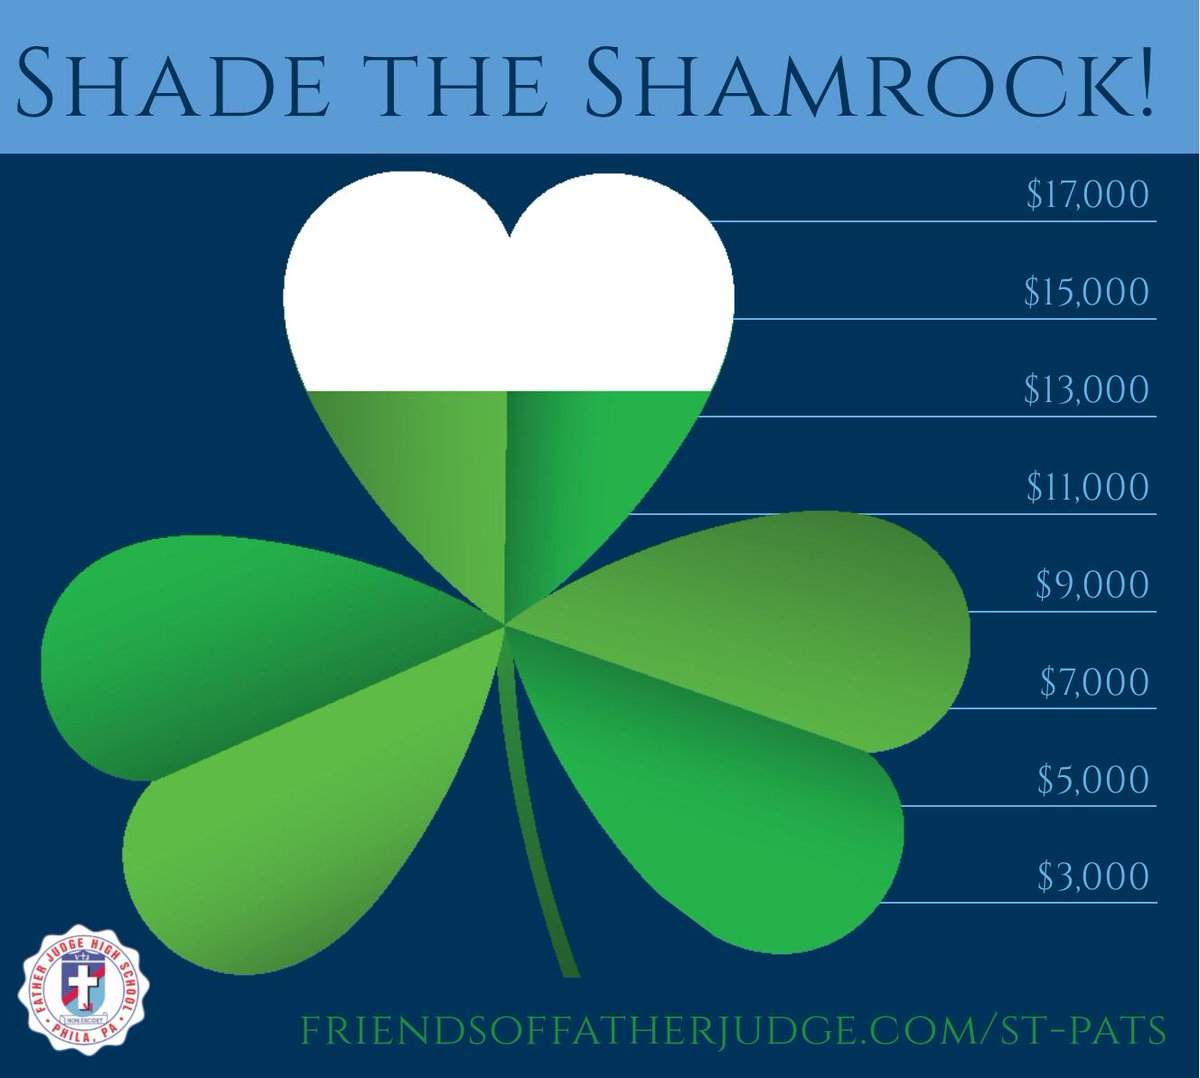 Last call for FJ shamrock magnets! Our #ShadeTheShamrock appeal ENDS TONIGHT. Donate $27+ to get YOUR magnet. All gifts support the #CrusaderCampaign which provides tuition assistance & other important resources to our deserving young Crusaders! ☘️ http://www.friendsoffatherjudge.com/st-pats